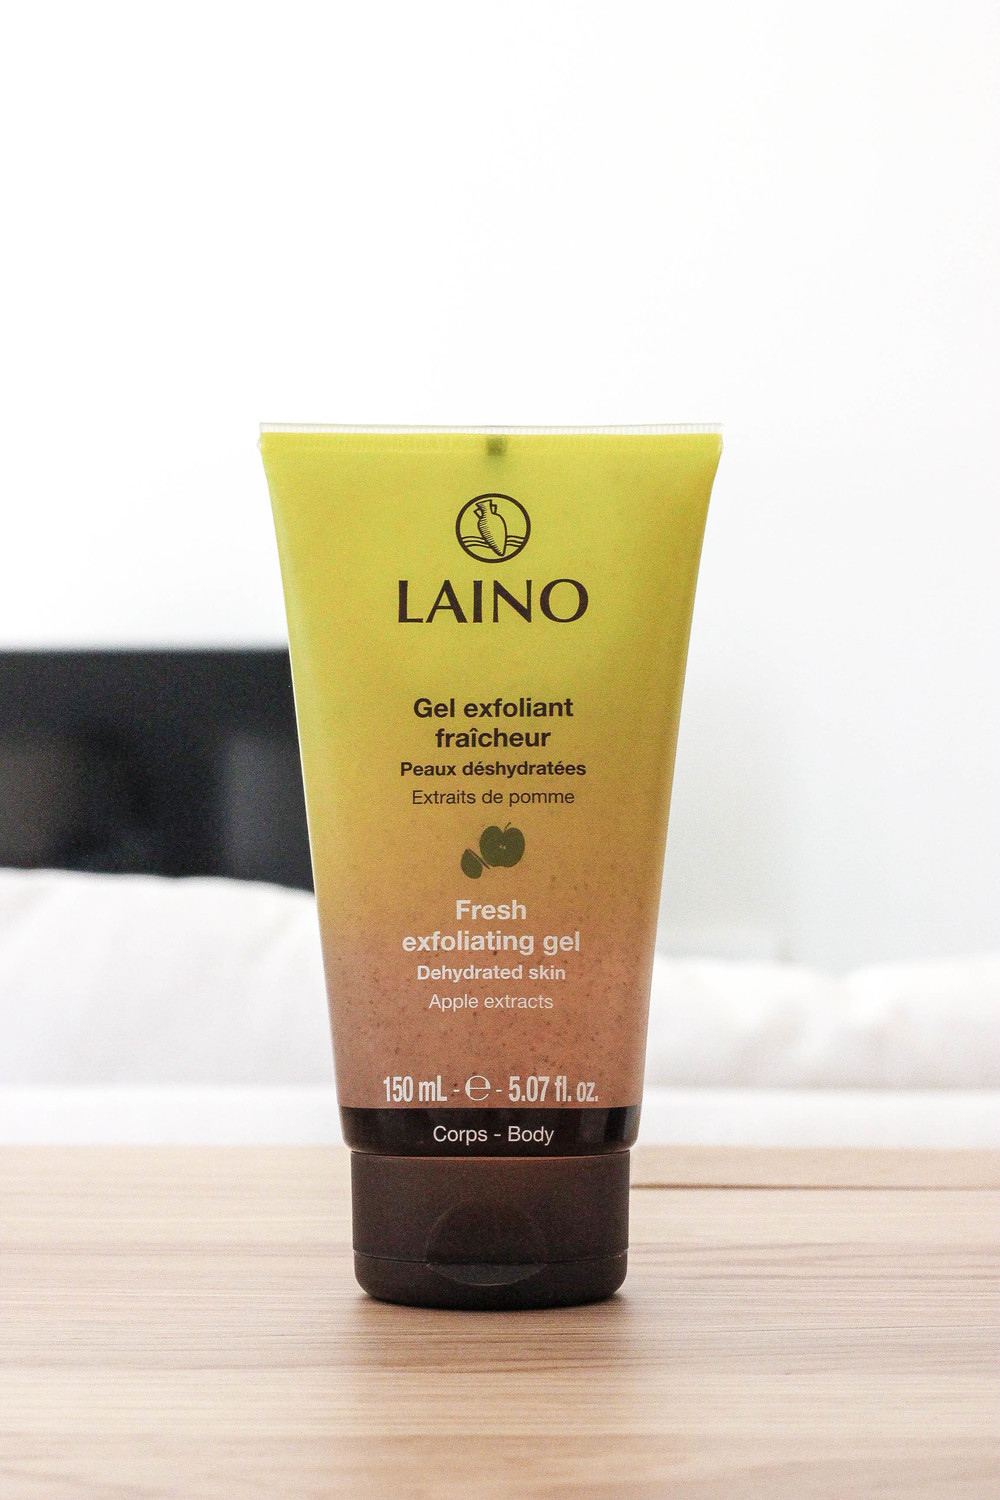 Gel exfoliant that promises not to dry your skin from Laino. Haven't tried yet but will!